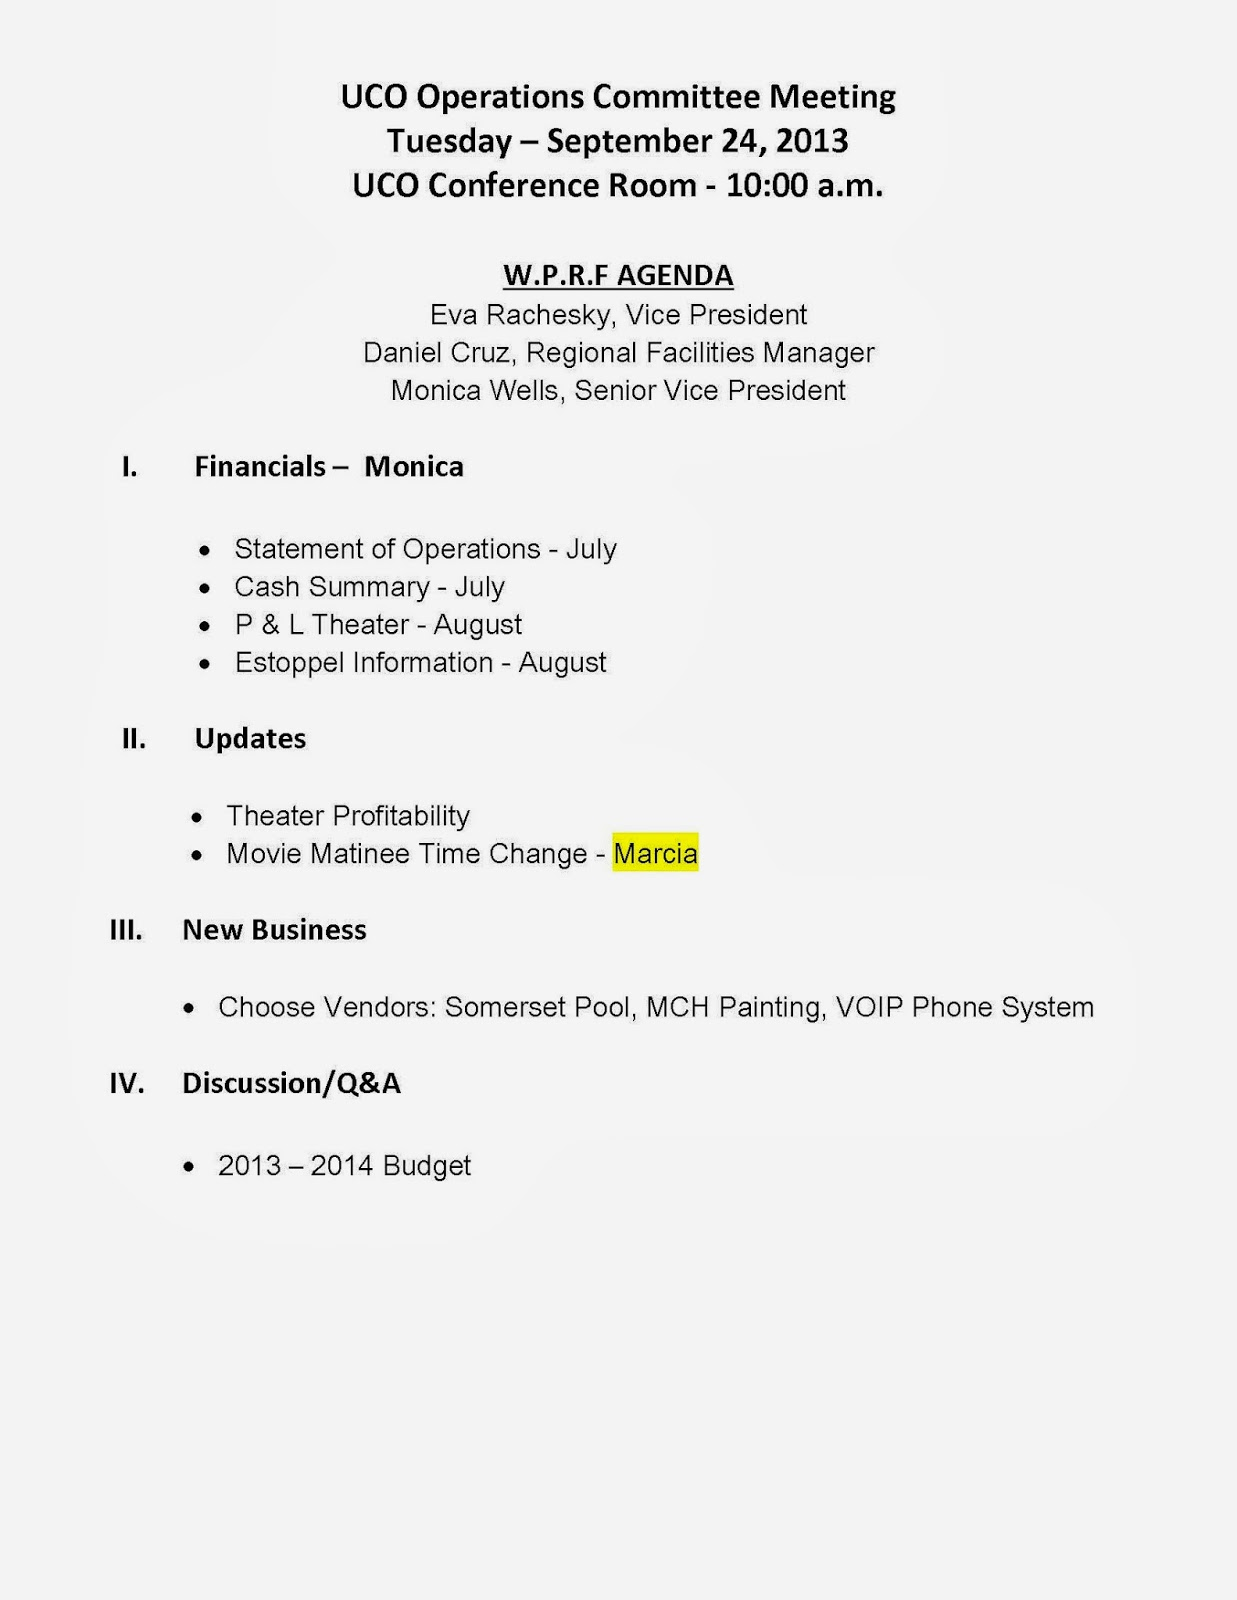 Our Village In West Palm Beach Notice Of Meeting And Agenda .